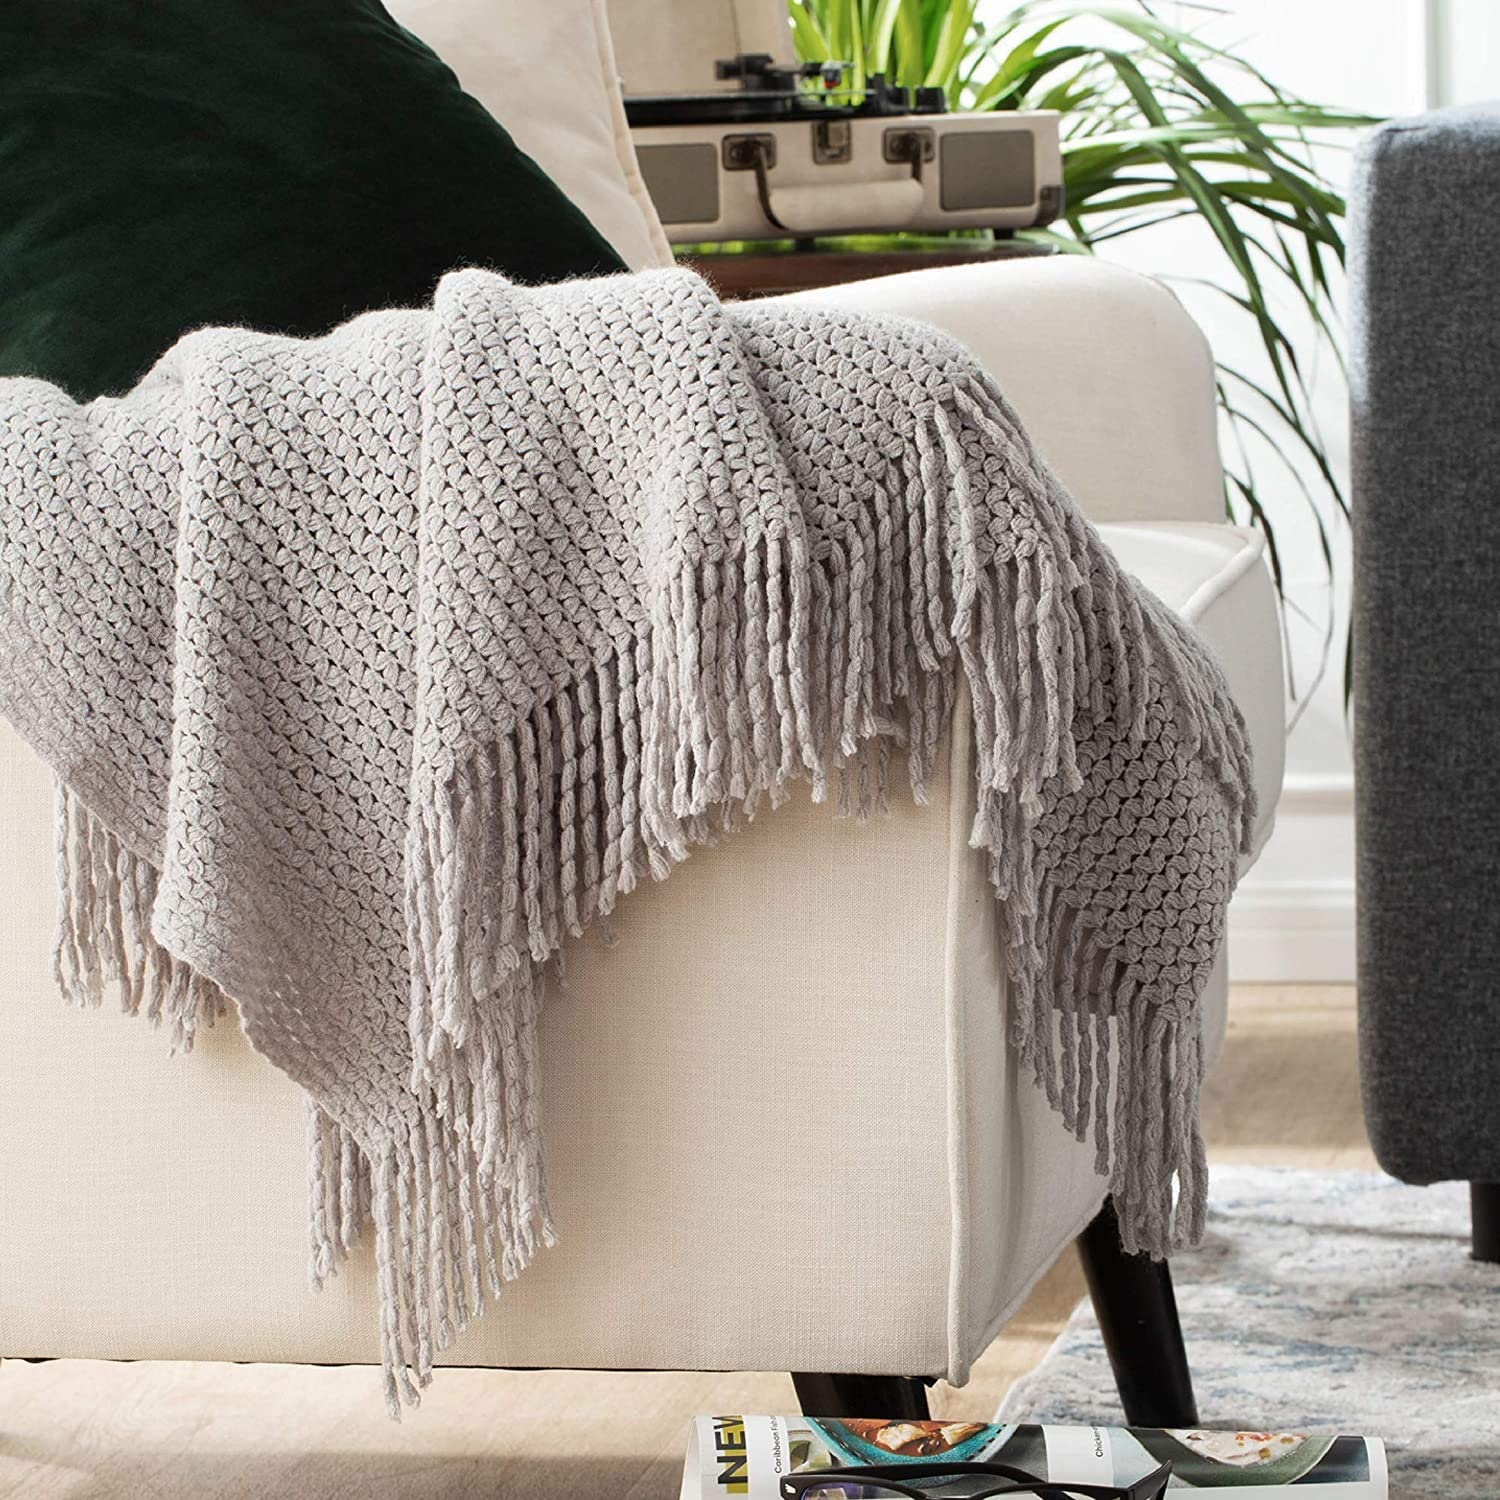 Bedsure Throw Blankets for Couch, Soft Knit Woven Blanket, 50x60 Inch - Lightweight Farmhouse Decorative Blanket with Tassels for Bed, Couch, Sofa - Suitable for Adults and Kids (Grey): Kitchen & Dining